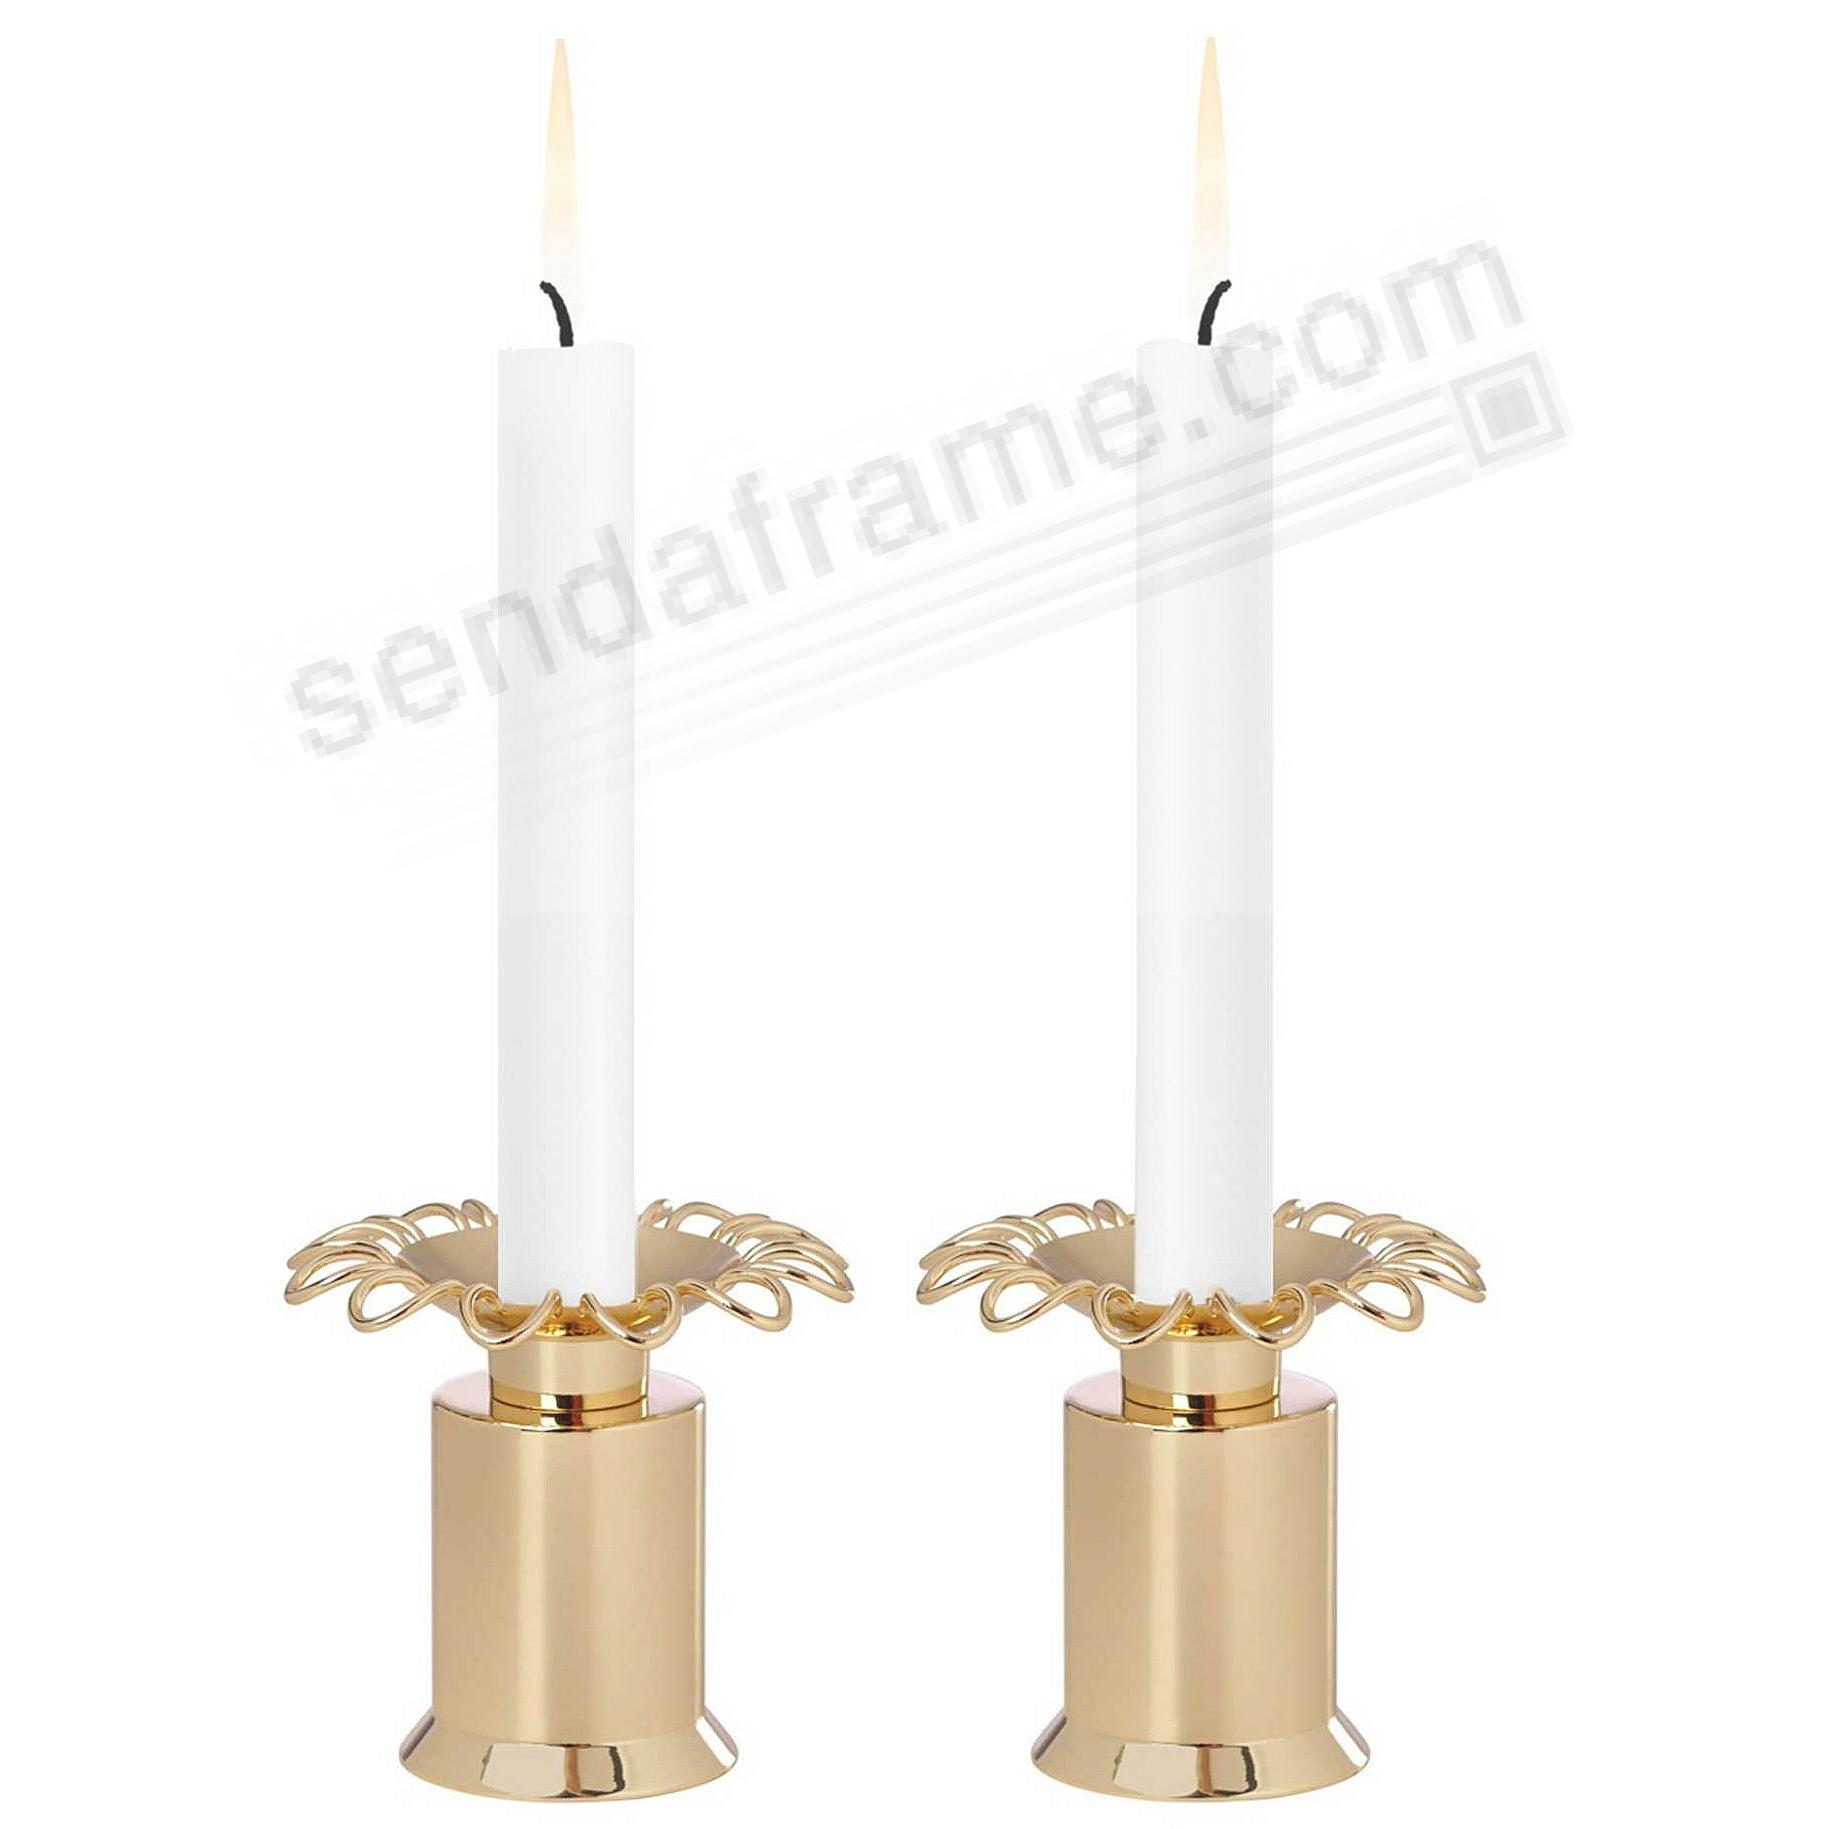 The KEATON STREET GOLD CANDLESTICK (PAIR) by kate spade new york®